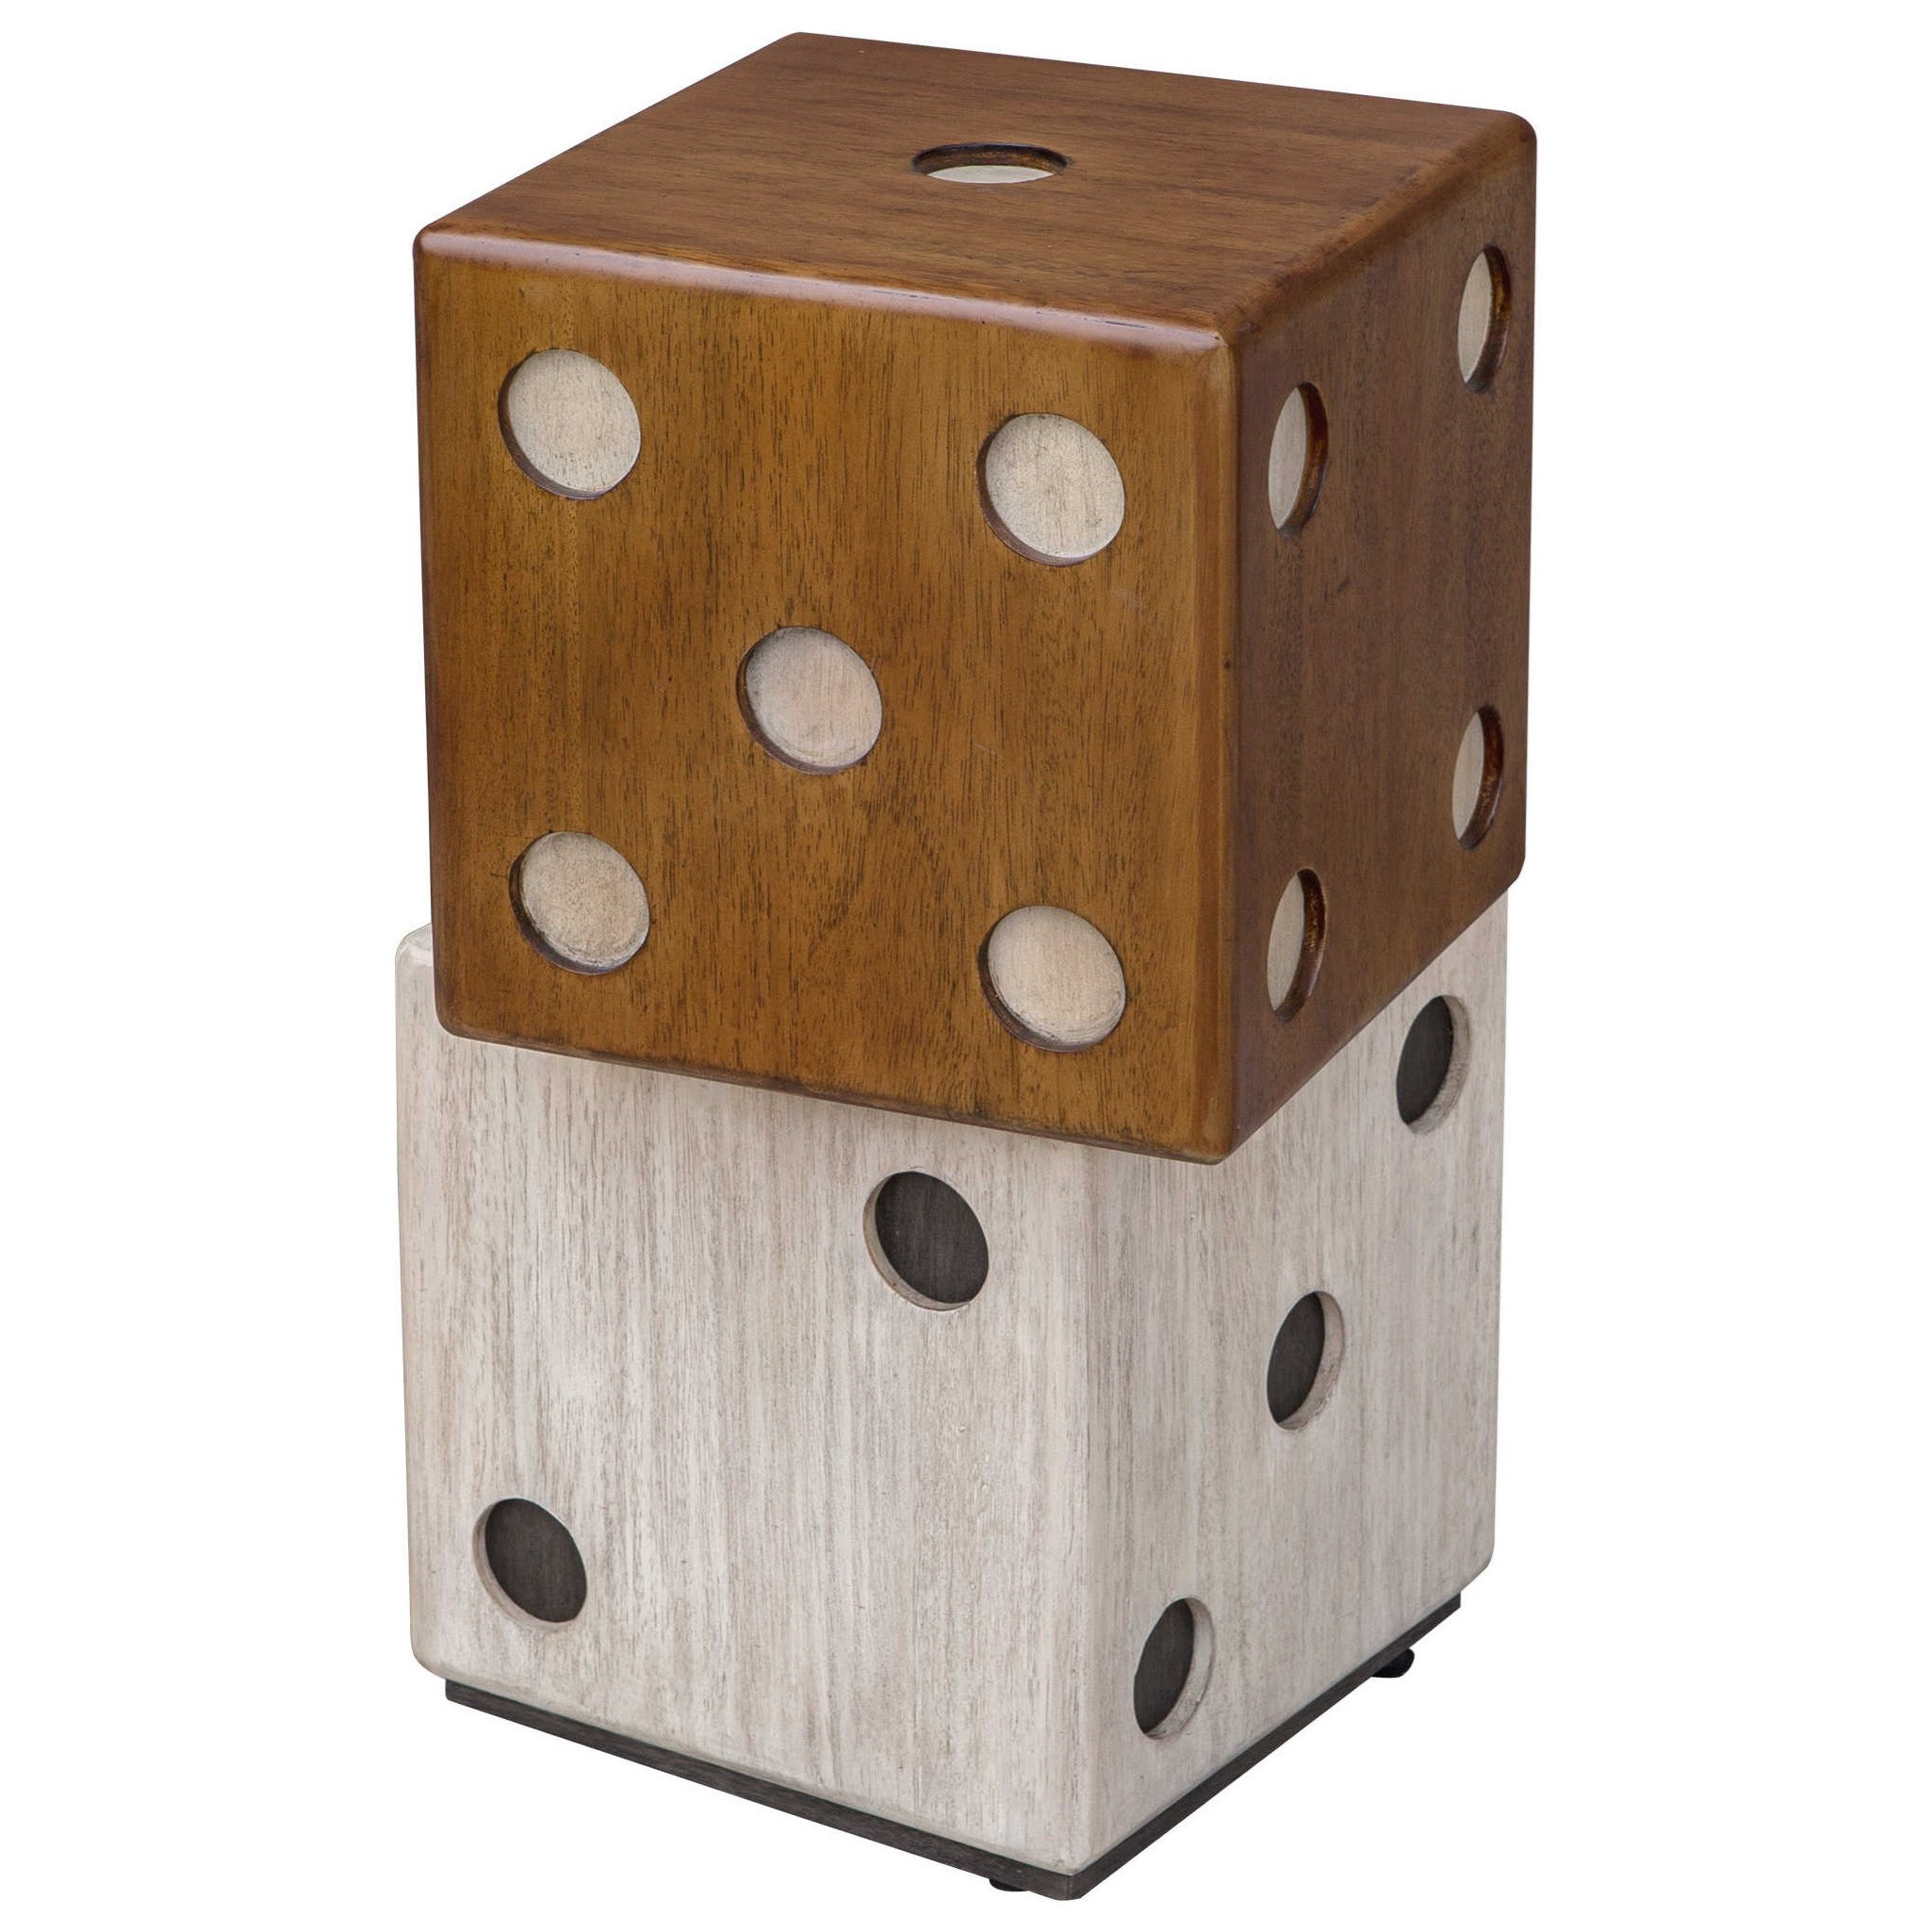 Accent Furniture - Occasional Tables Roll The Dice Accent Table by Uttermost at Factory Direct Furniture